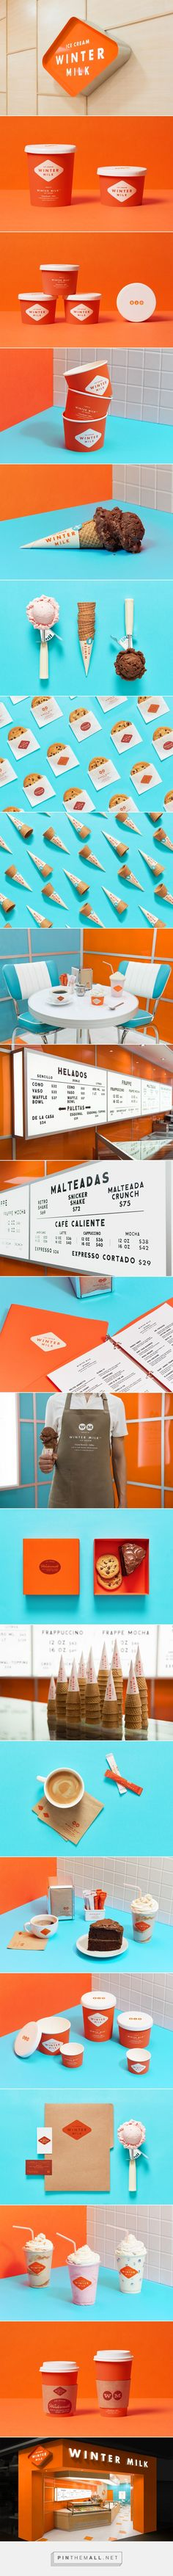 Branding, Packaging & Interiorism — Winter Milk | Anagrama... - a grouped images picture - Pin Them All